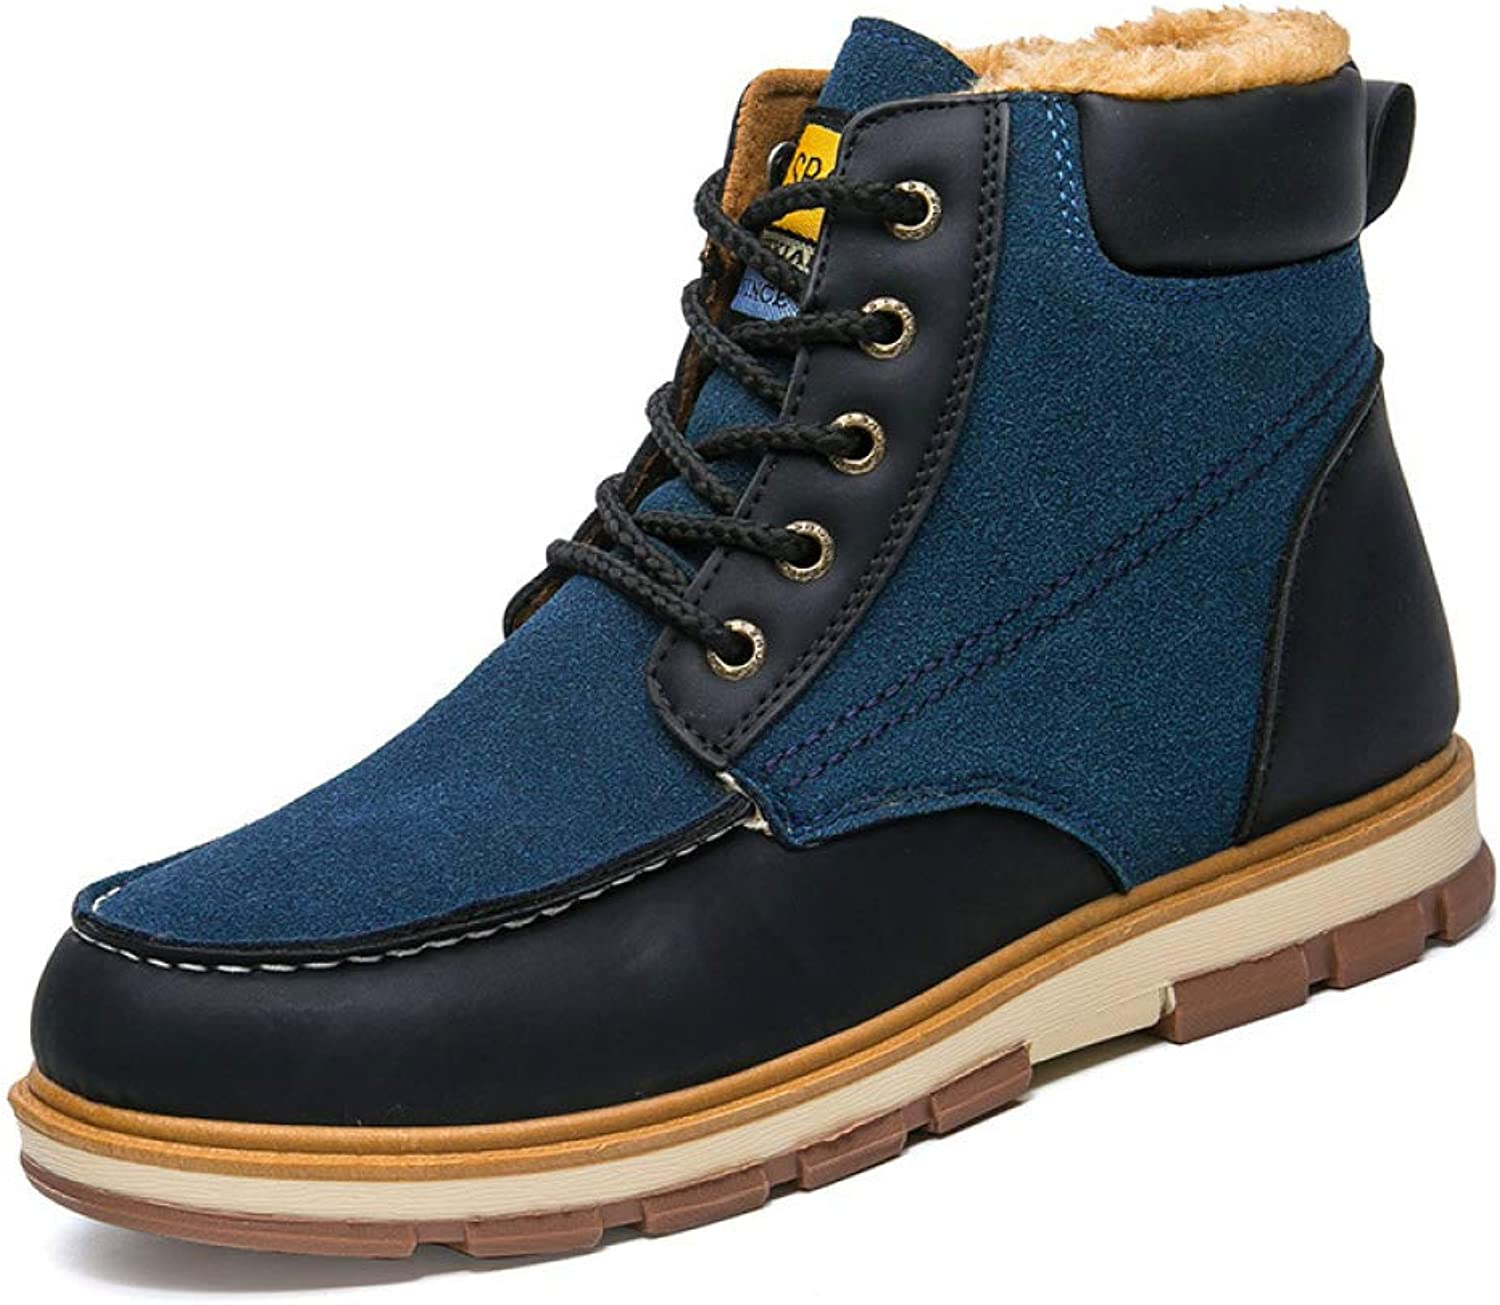 shoes Autumn and Winter Martin Boots, Men's Leather Boots, Men's Trend Suede High to Help Classic Tooling Cotton, Short Tube Waterproof Non-Slip High to Help Outdoor Cotton Boots